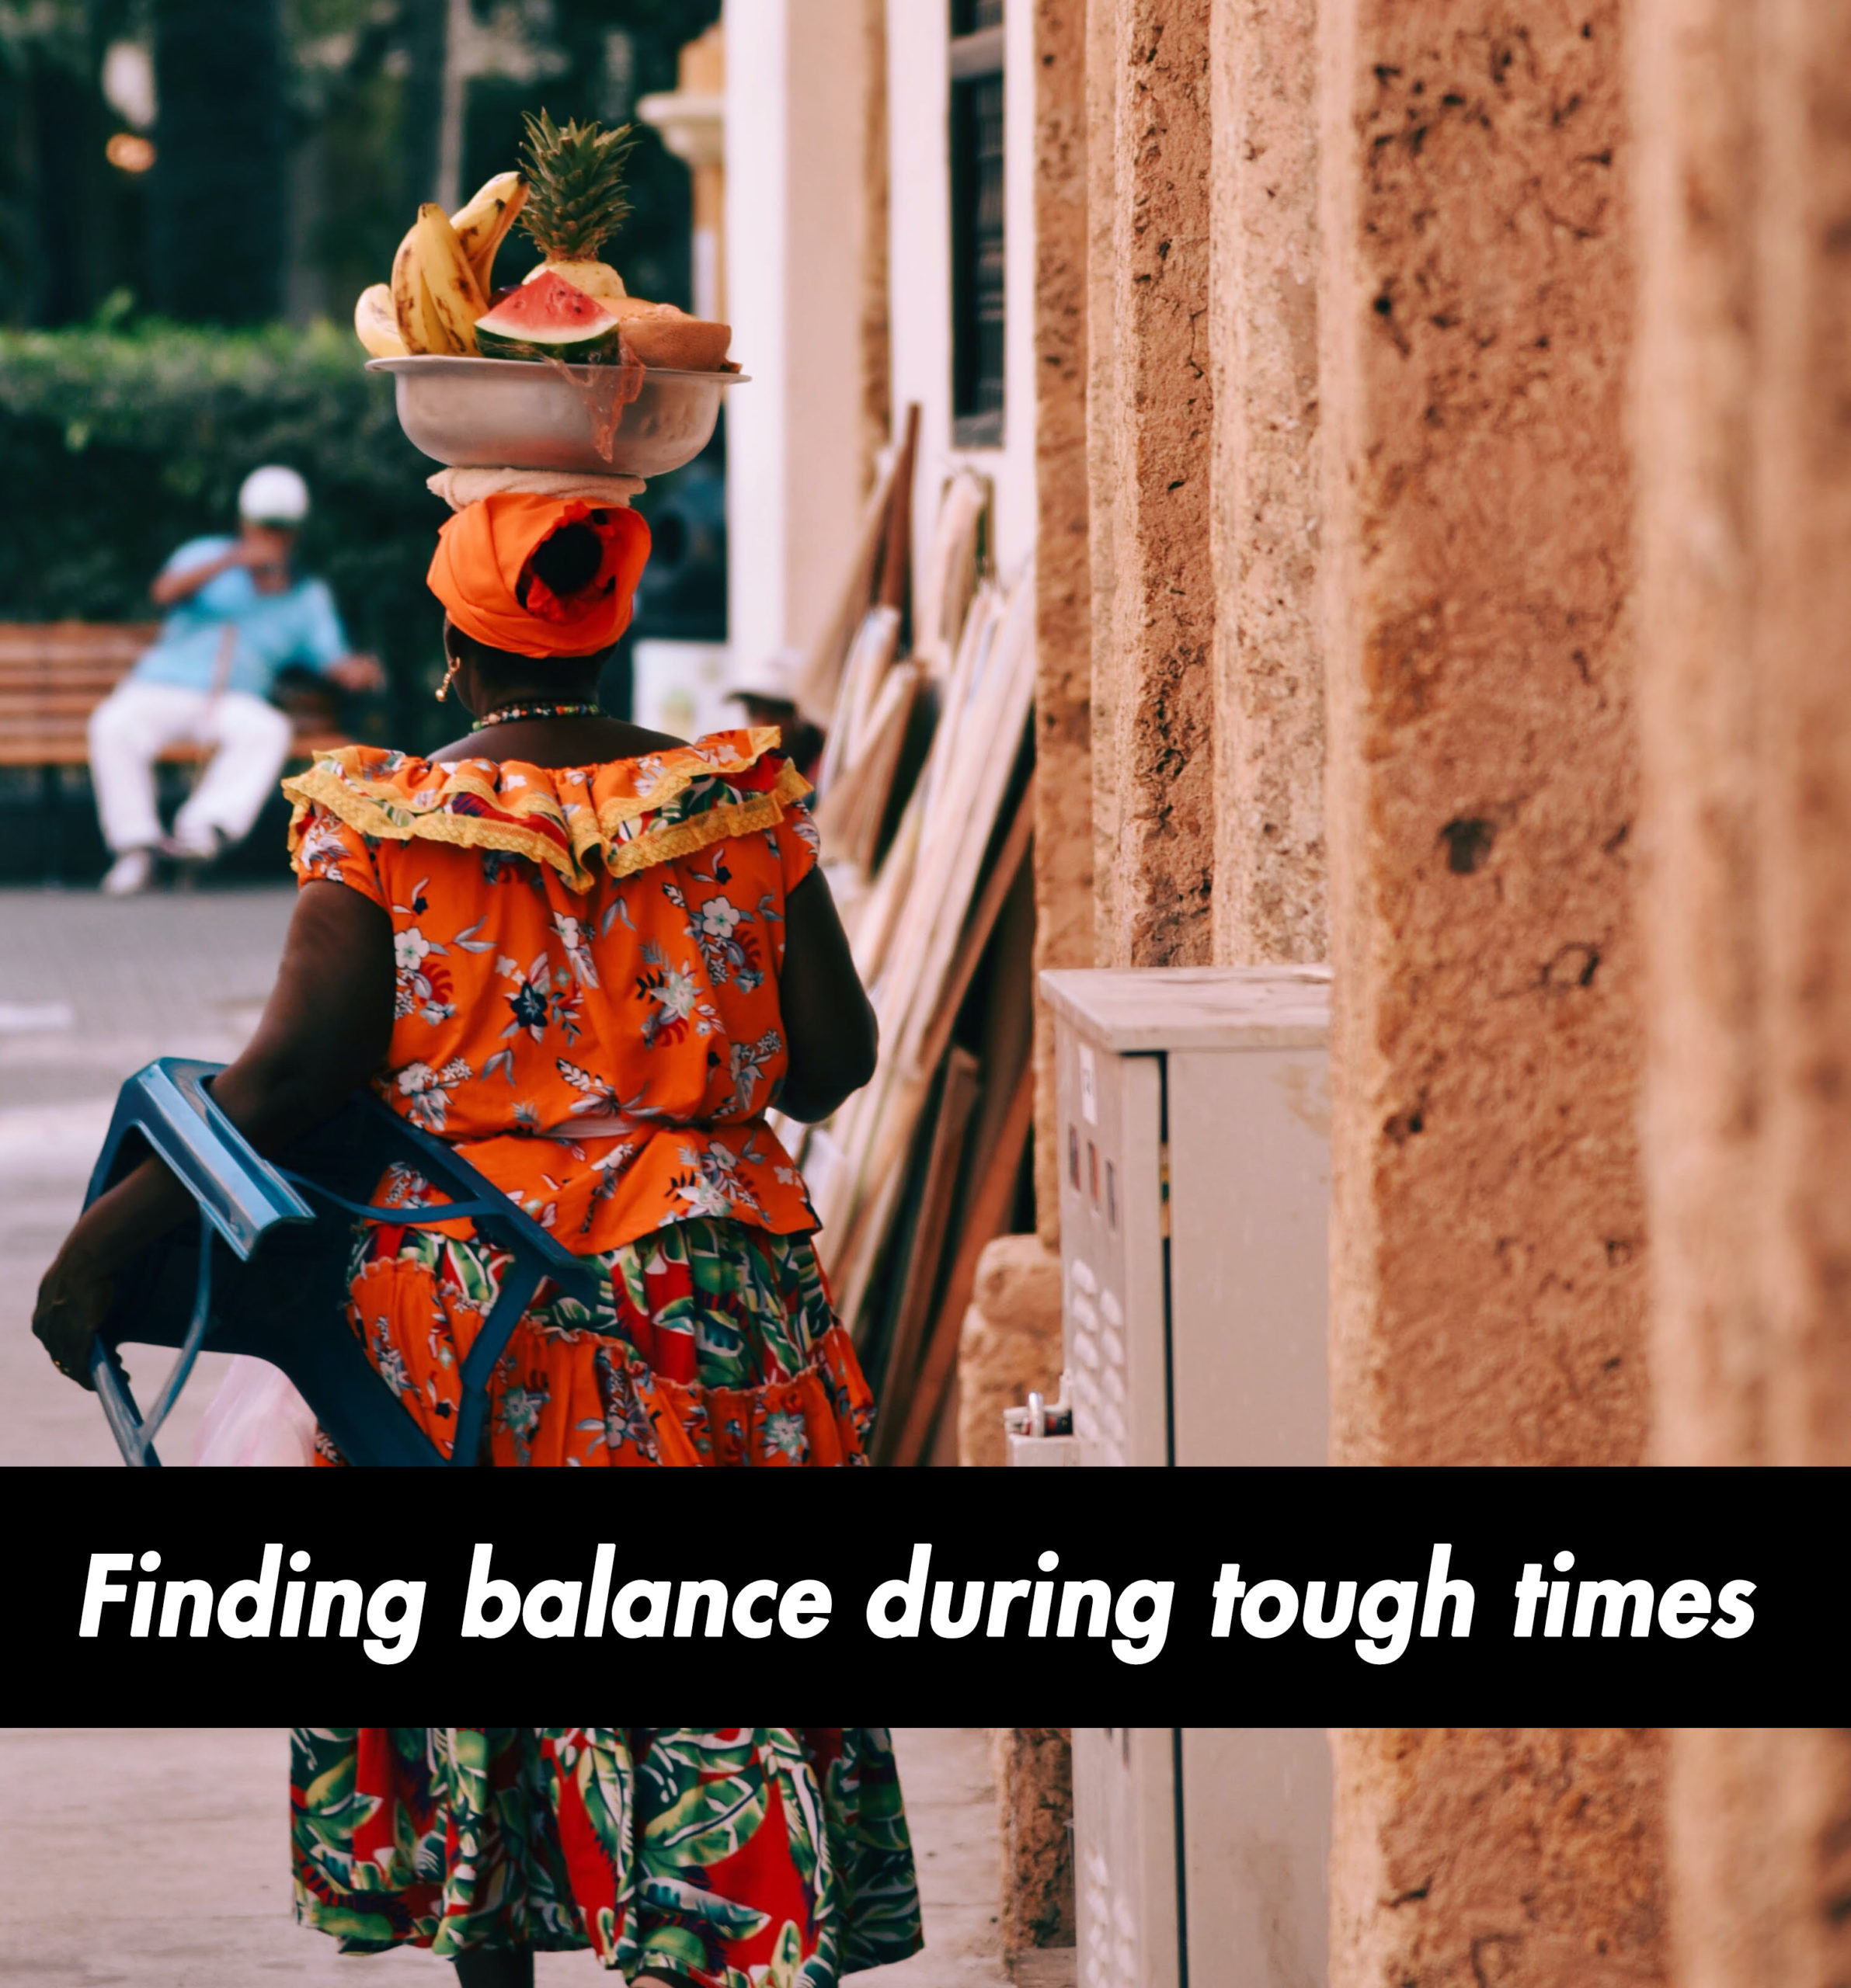 Finding balance in tough times